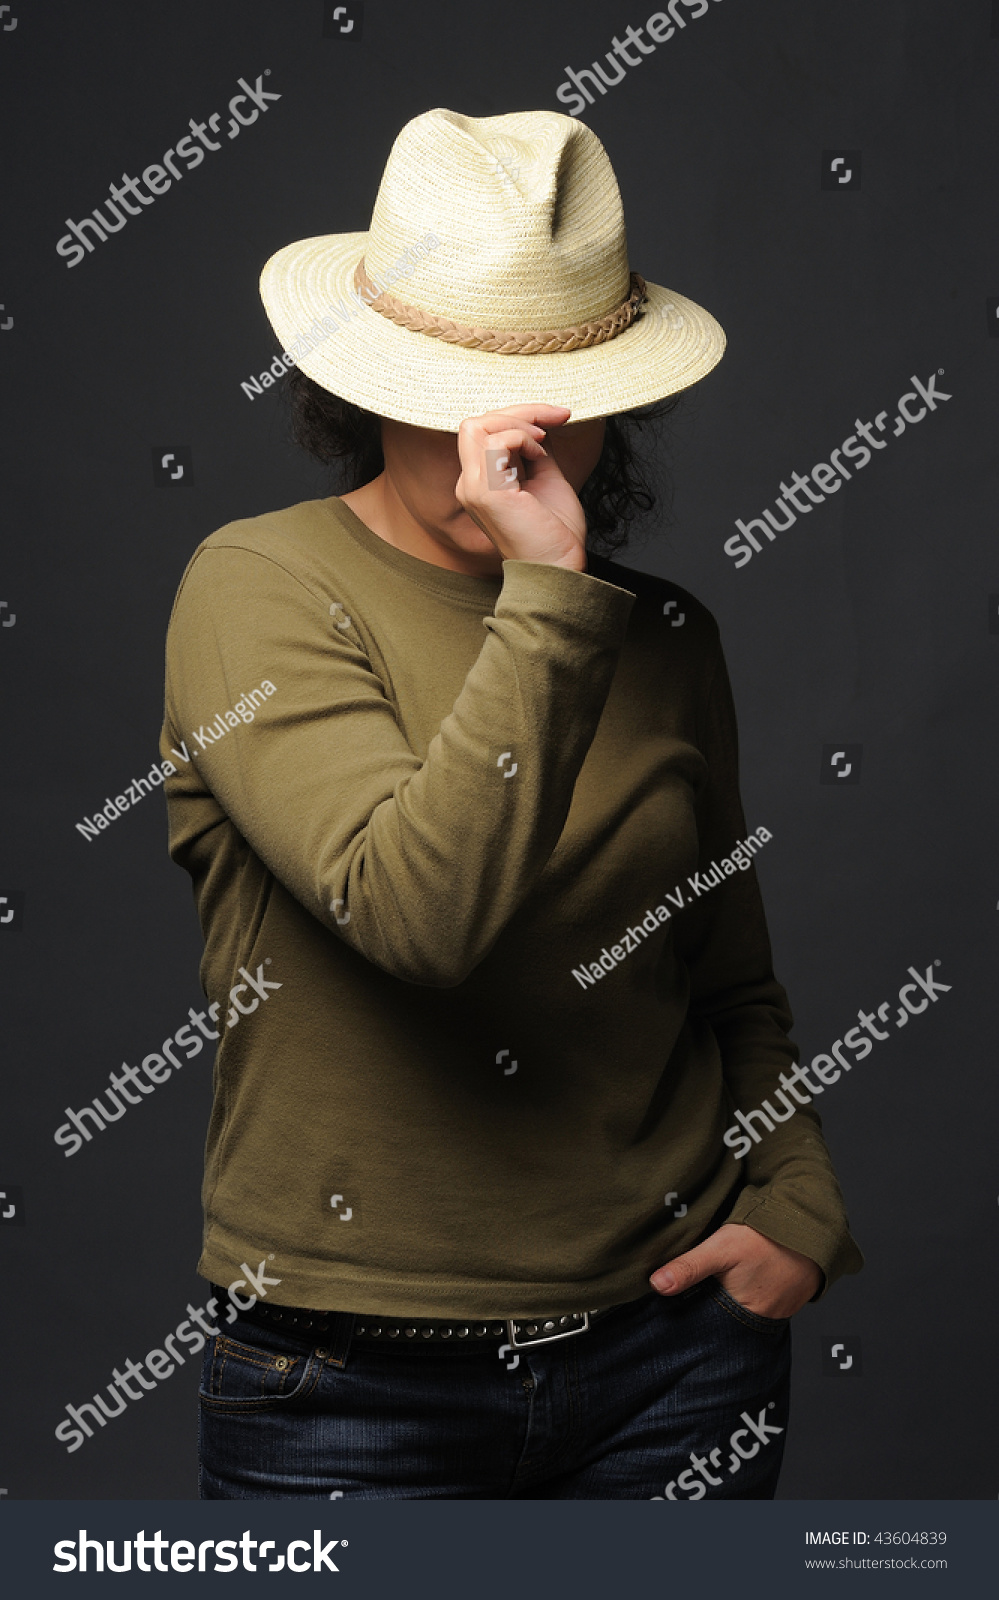 6735dce7718f2 Young boy wearing a cowboy hat isolated on black